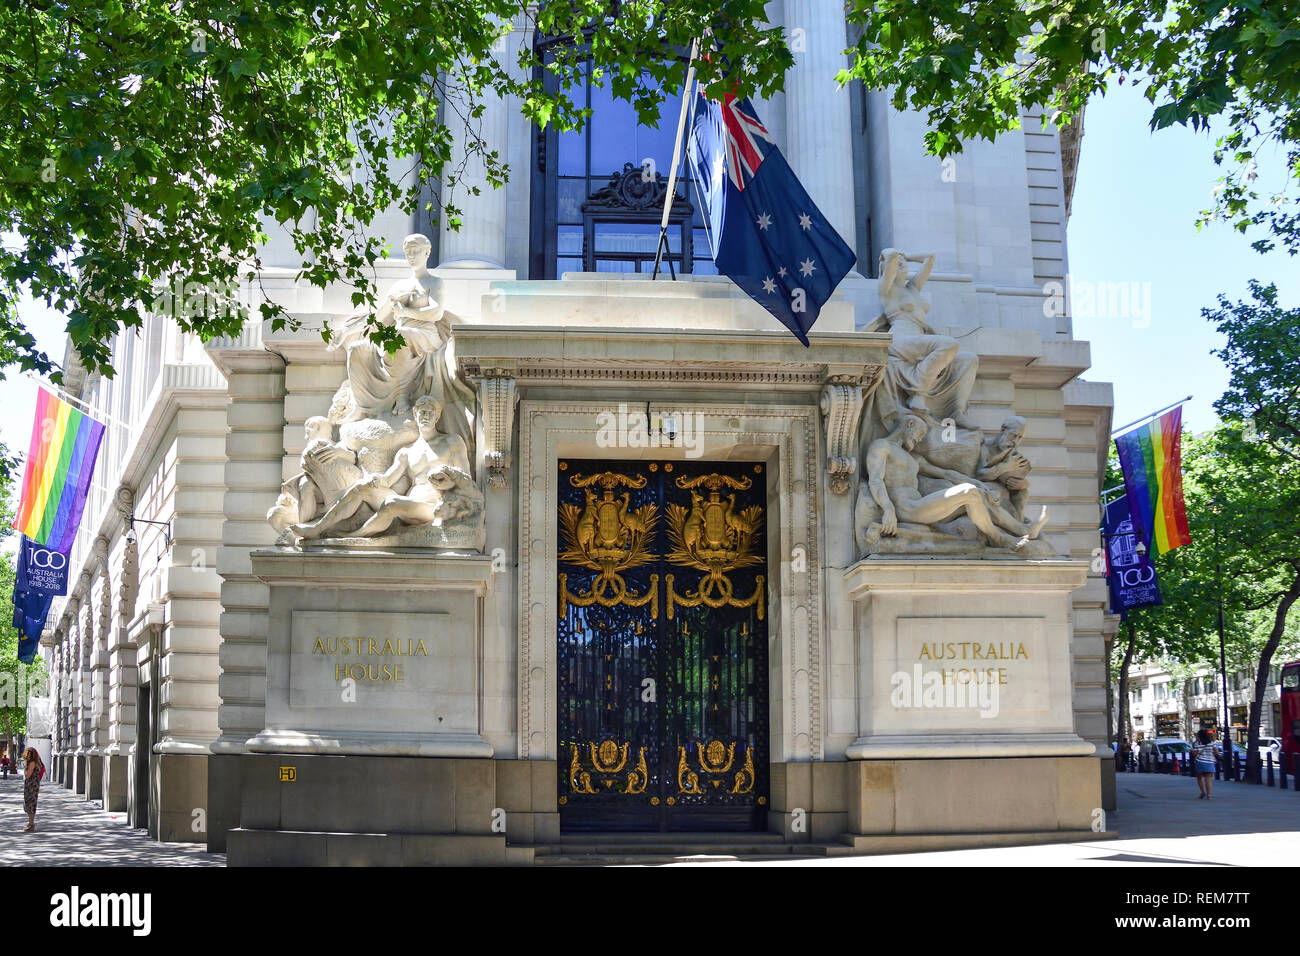 Australian High Commission (Australia House), The Strand, Aldwych, City of Westminster, Greater London, England, United Kingdom - Stock Image